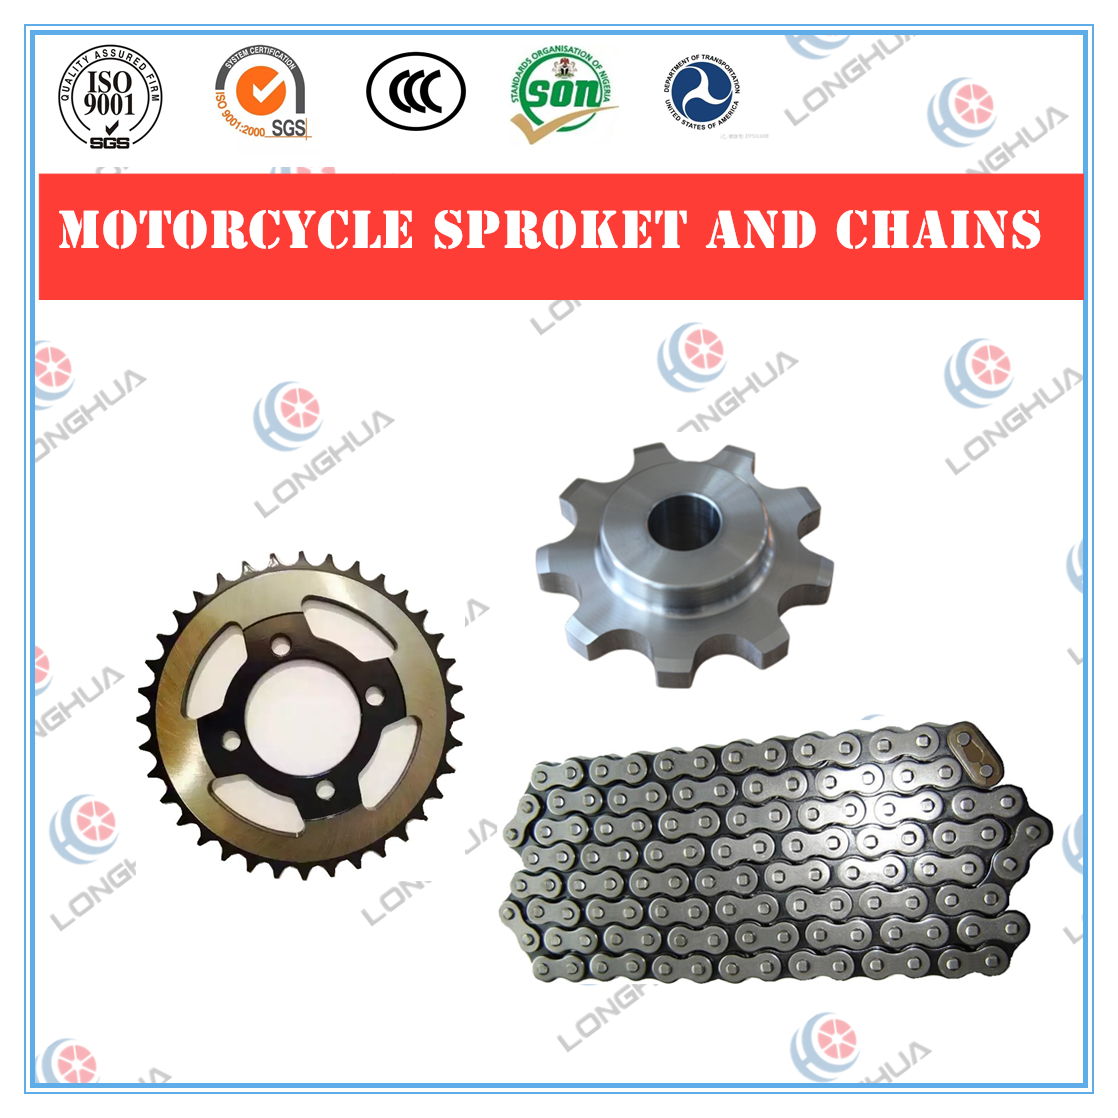 420/428/520/530 O Ring motorcycle parts marine/rigging hardware Motorcycle Conveyor link Roller Chain